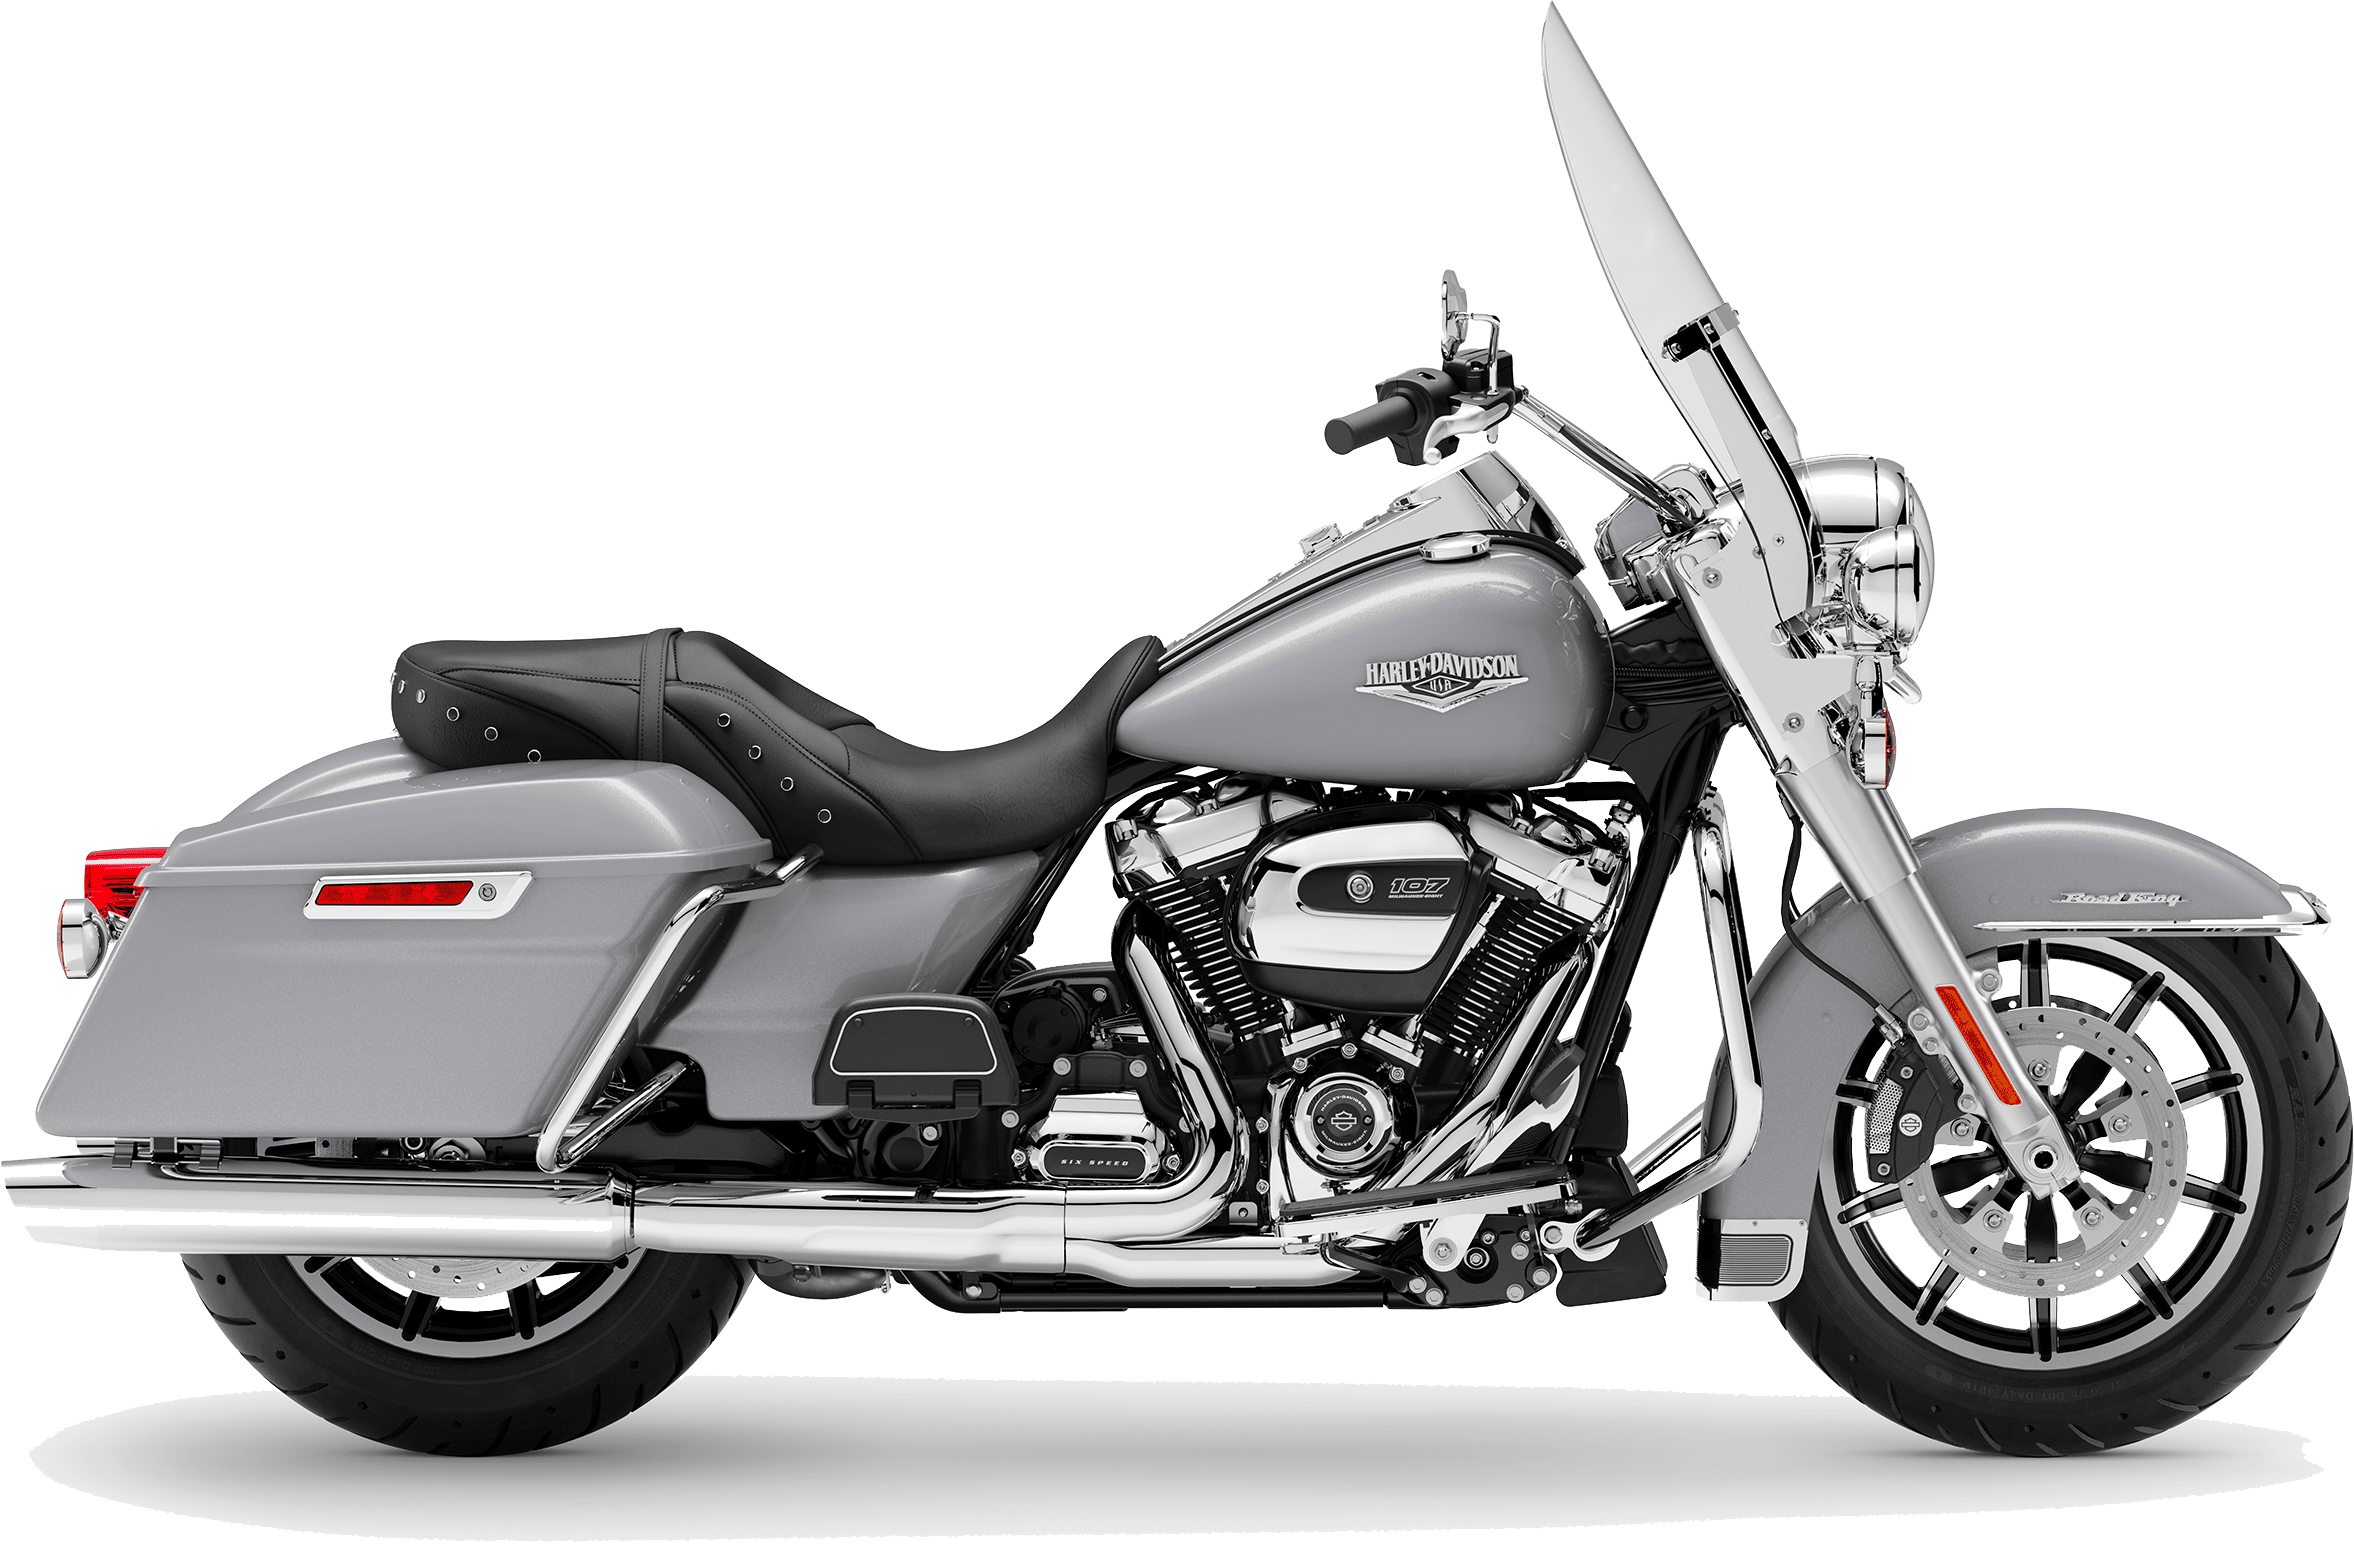 2019 Harley-Davidson H-D Touring Road King Barracuda Silver